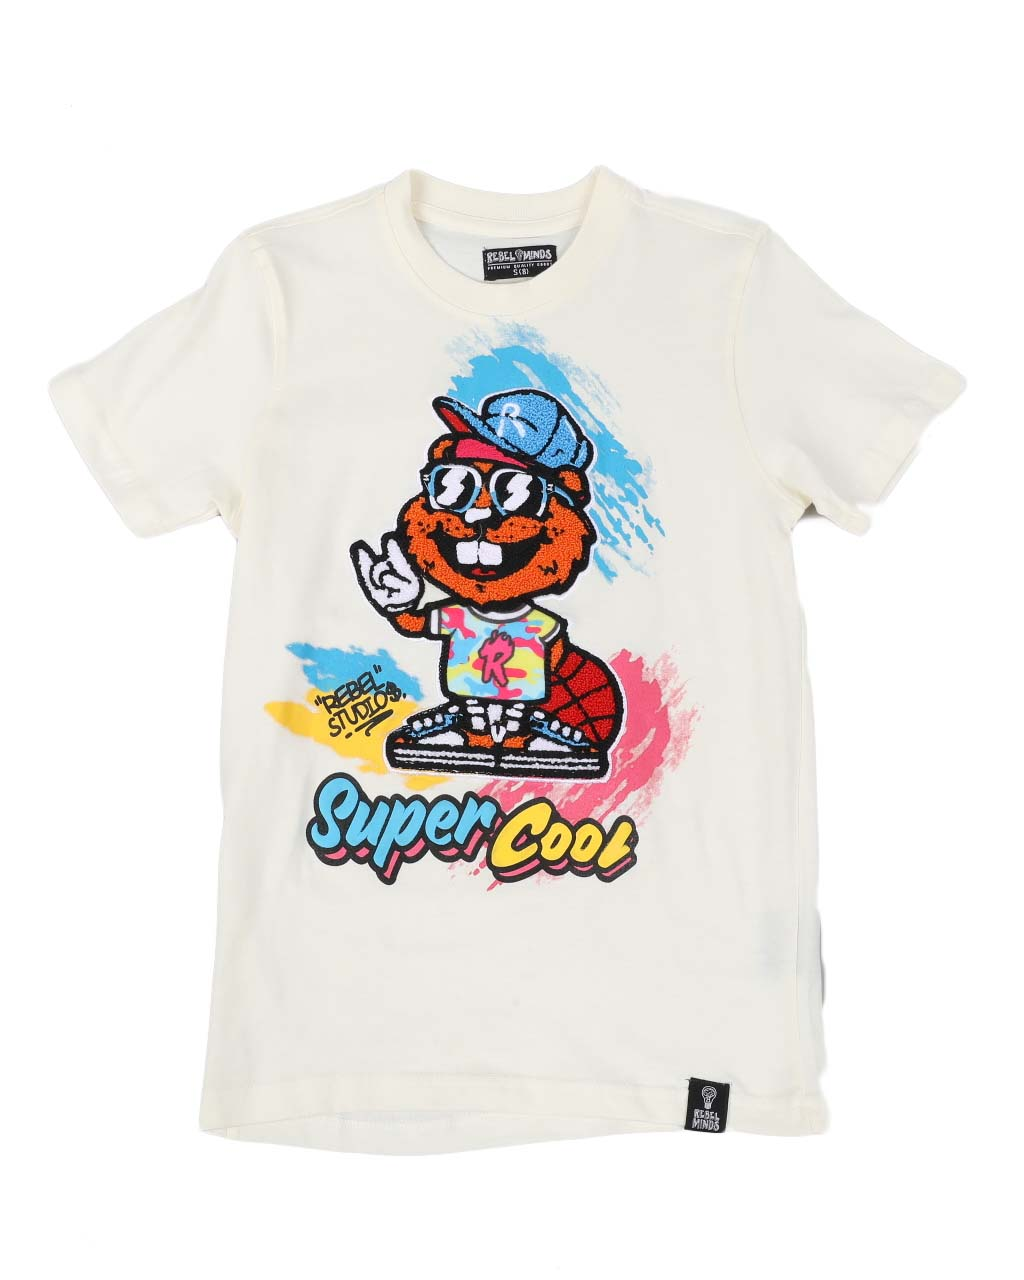 Super Cool Graphic Tee - FLY GUYZ